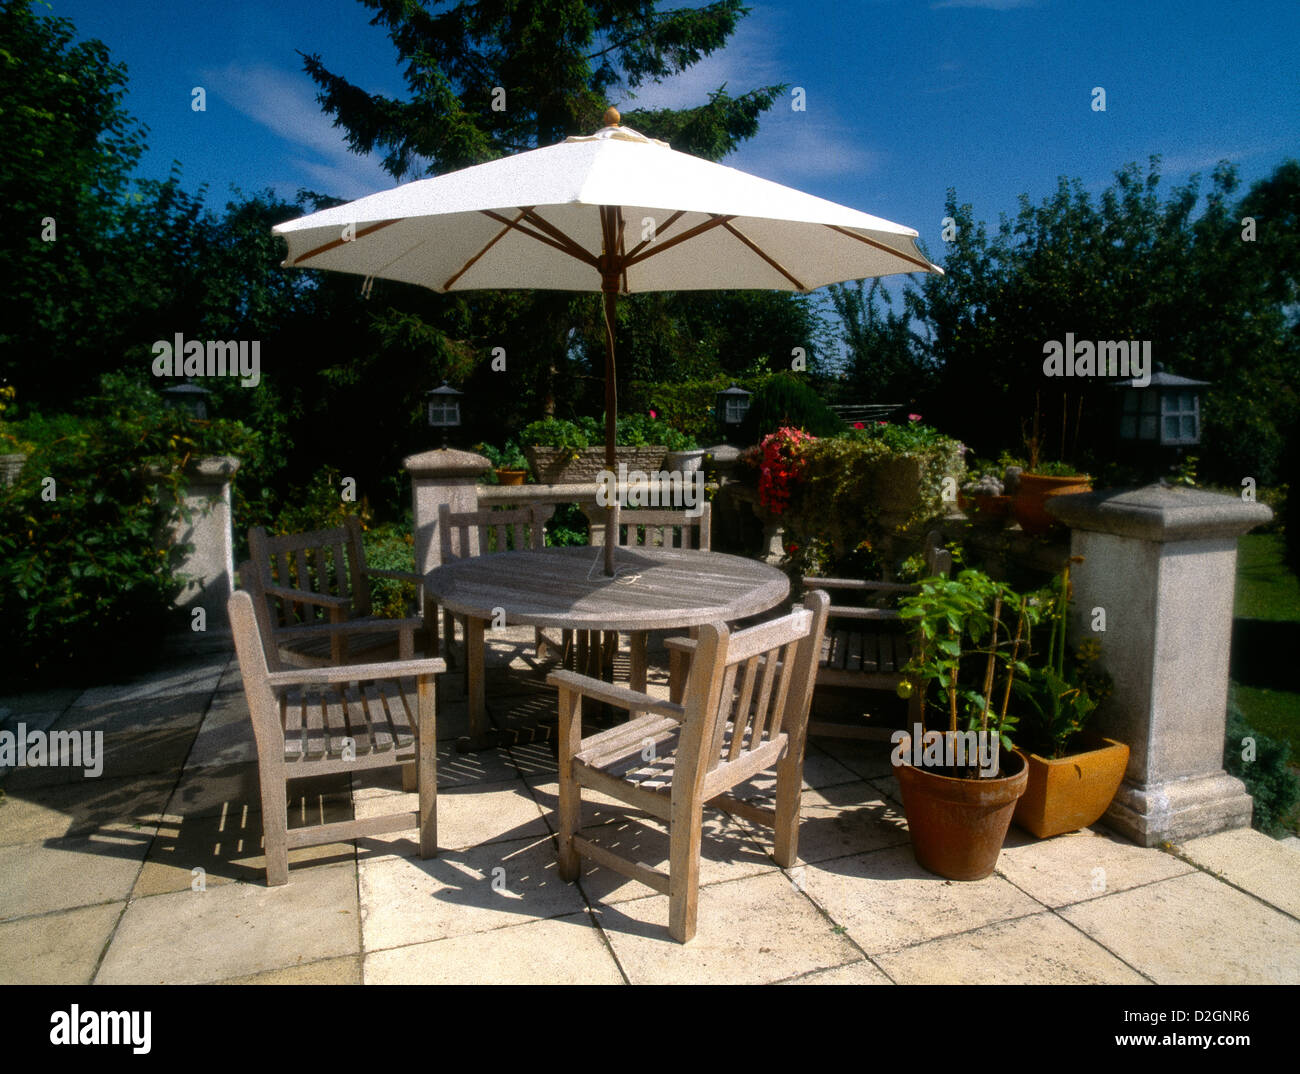 stock photo wooden garden furniture table chairs sun shade umbrella